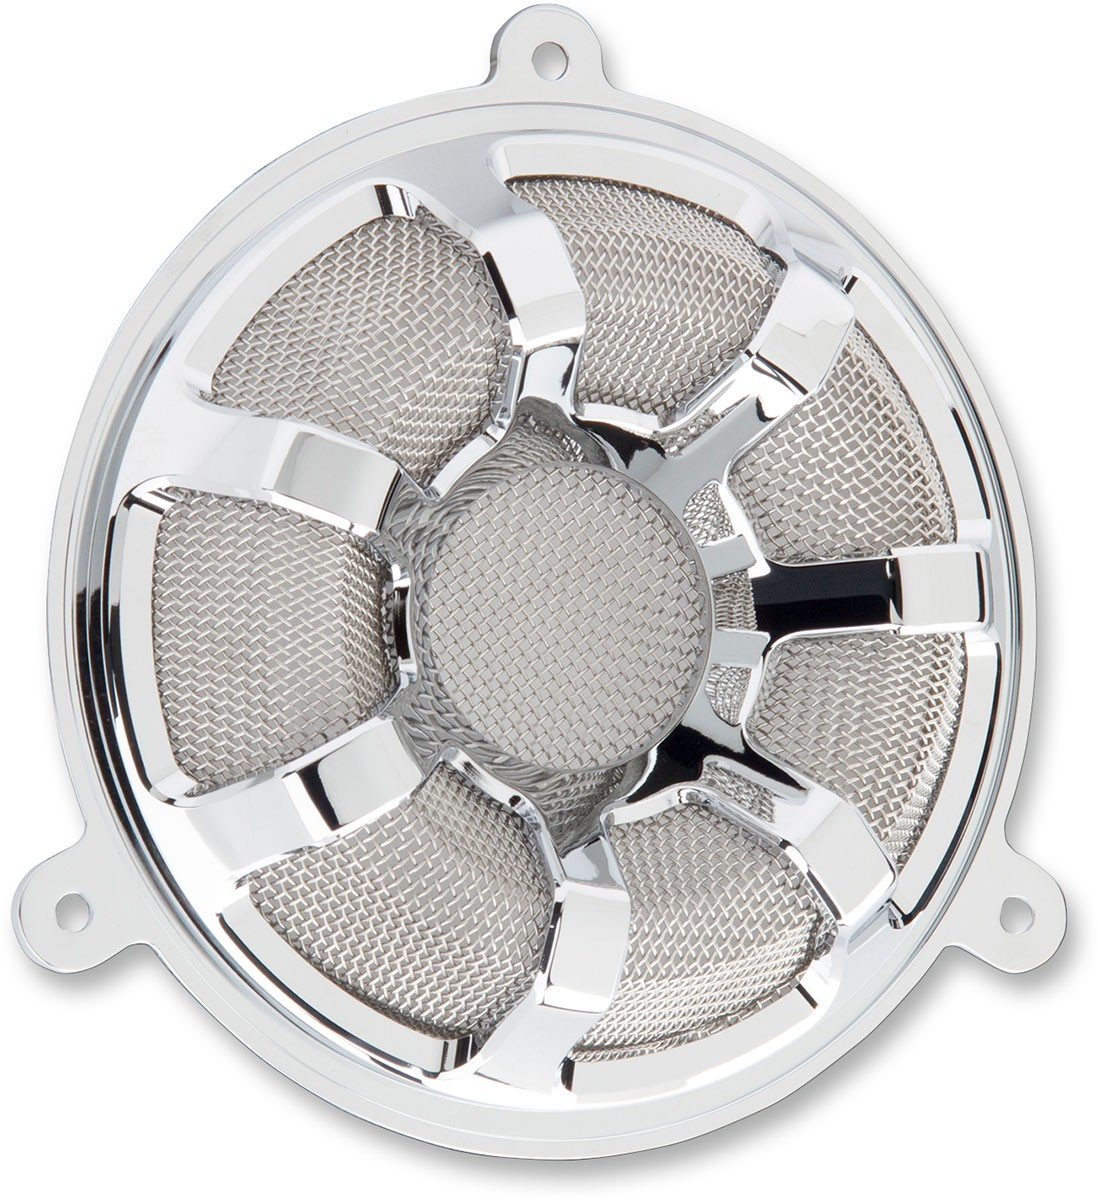 Arlen Ness - 03-909 - Beveled Speaker Grills, Chrome